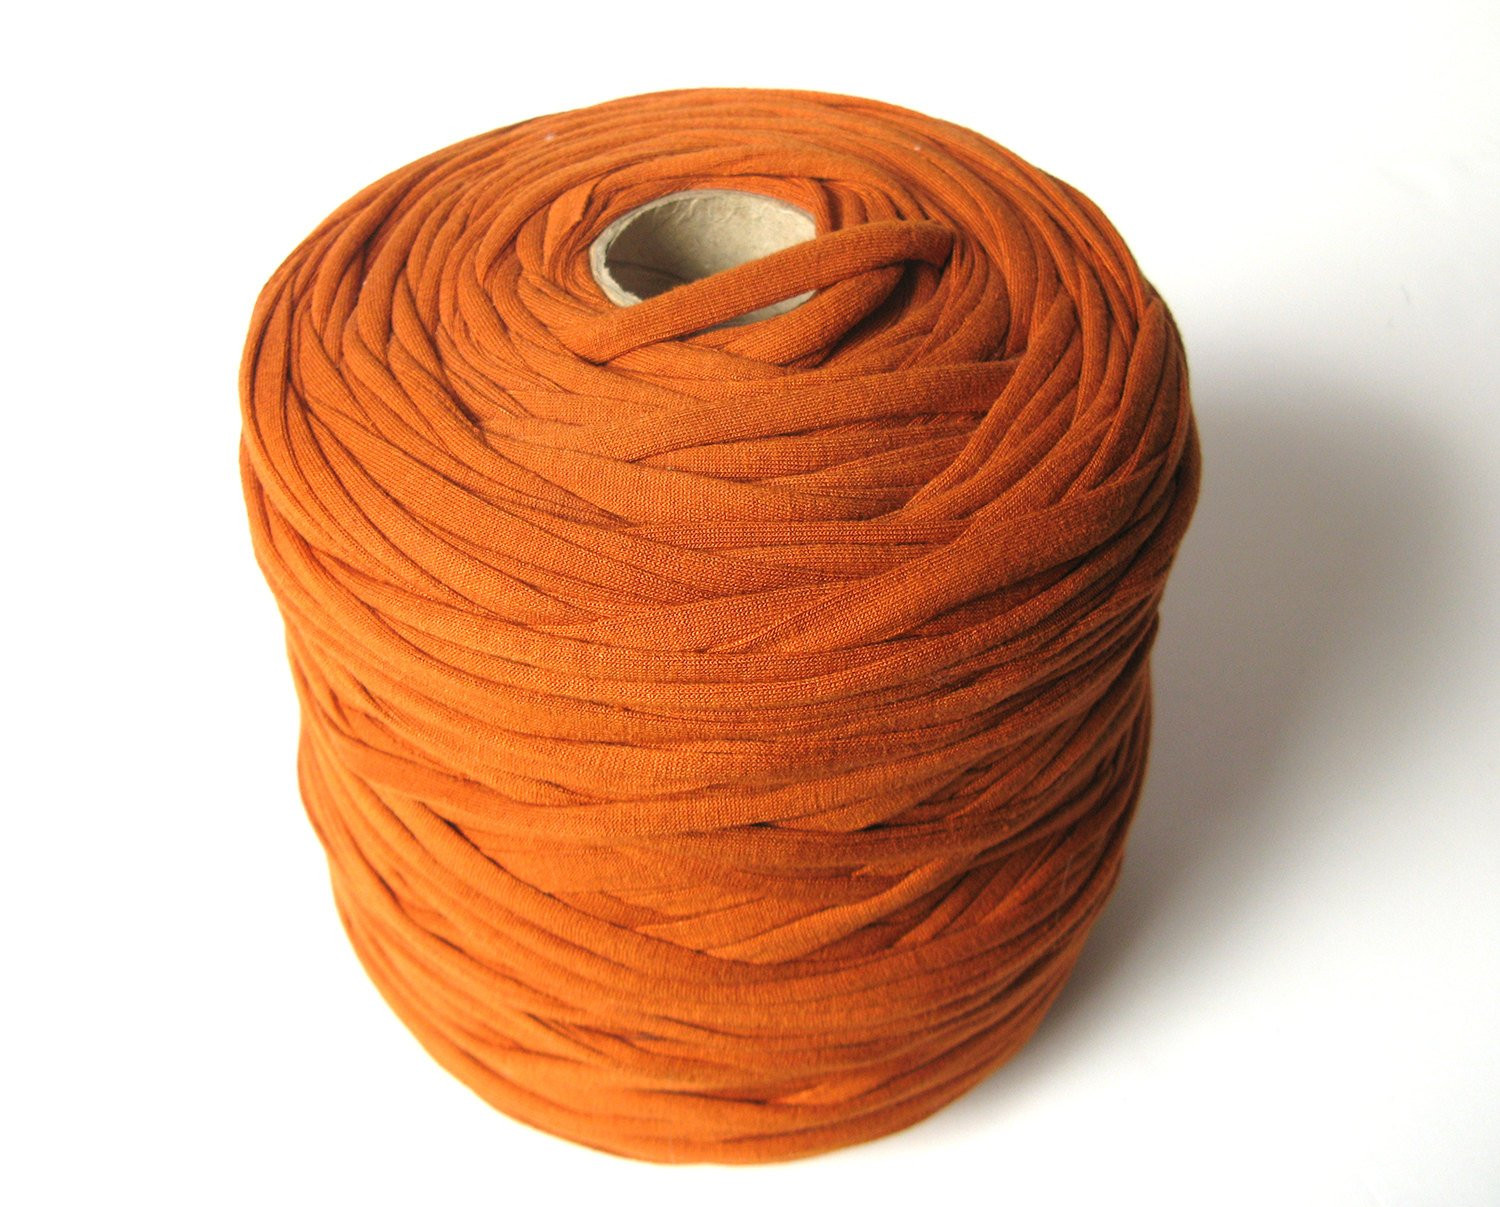 Chunky Cotton Yarn Fresh T Shirt Yarn Chunky Bulky Thick Cotton Yarn orange Of Chunky Cotton Yarn Beautiful Cherry Red Chunky Tape Yarn for Knitting Weaving and